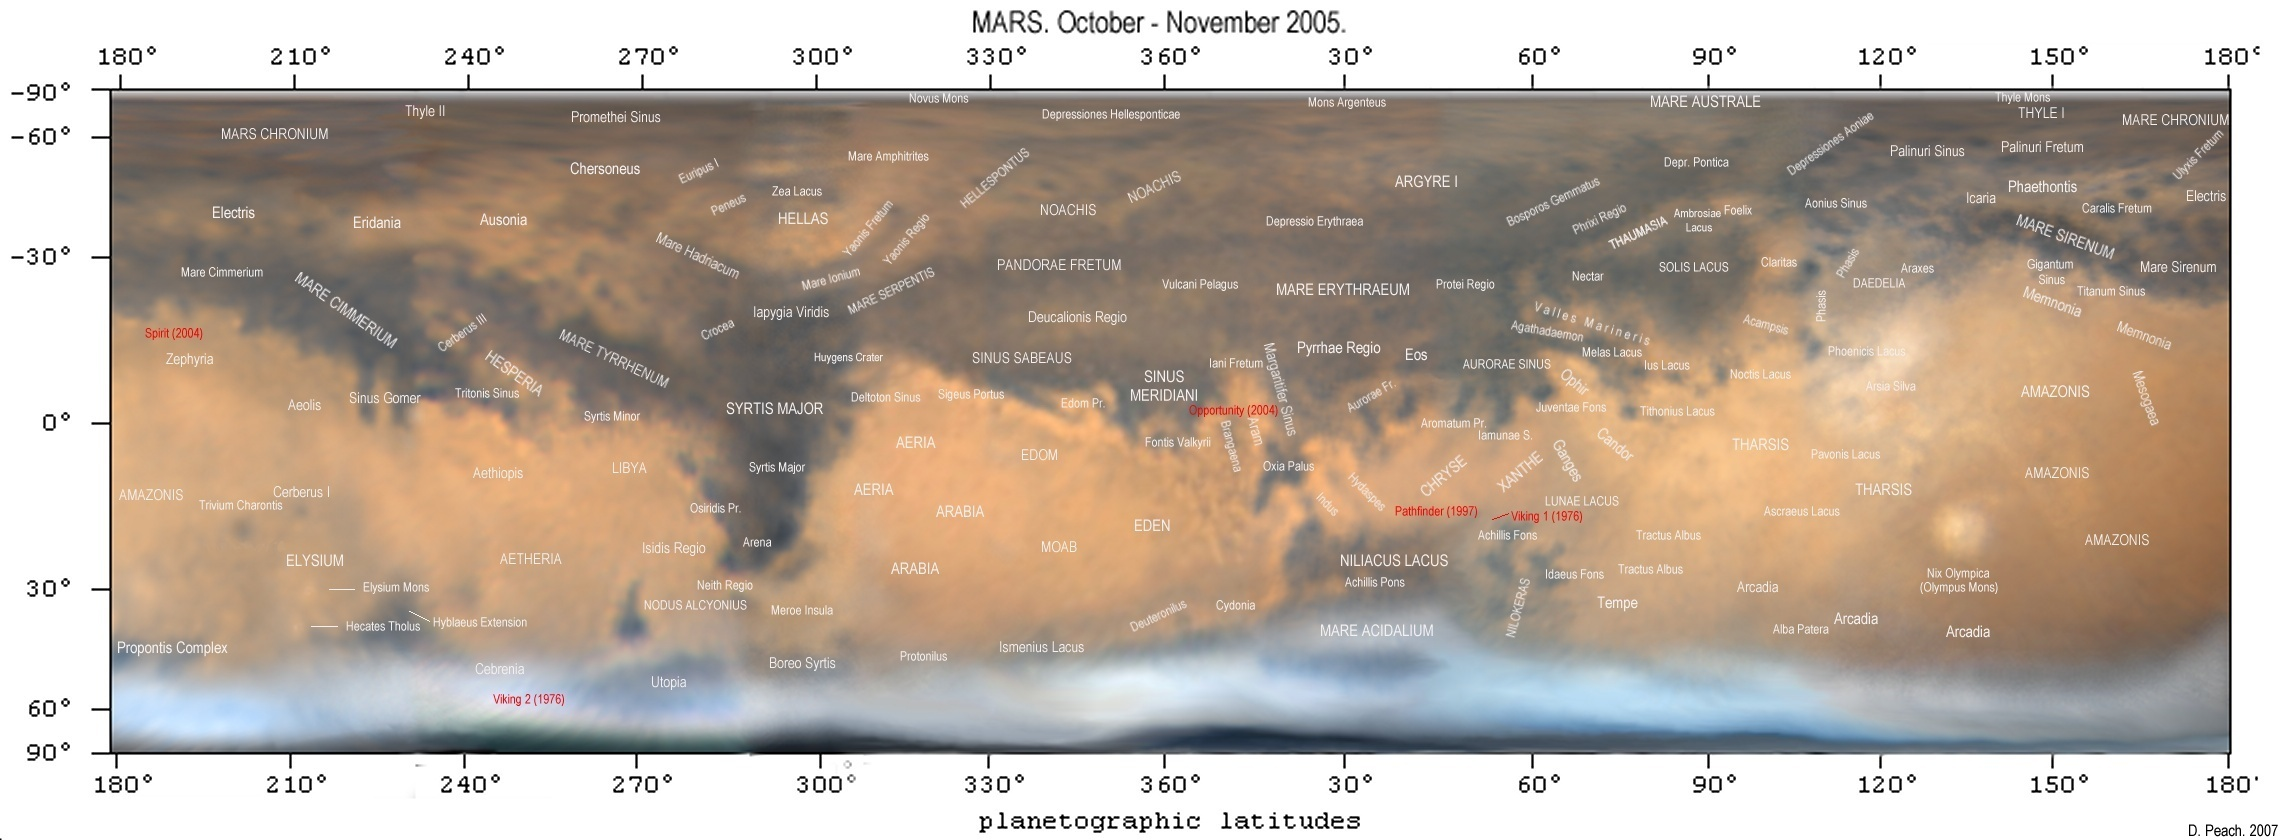 The marks of Mars